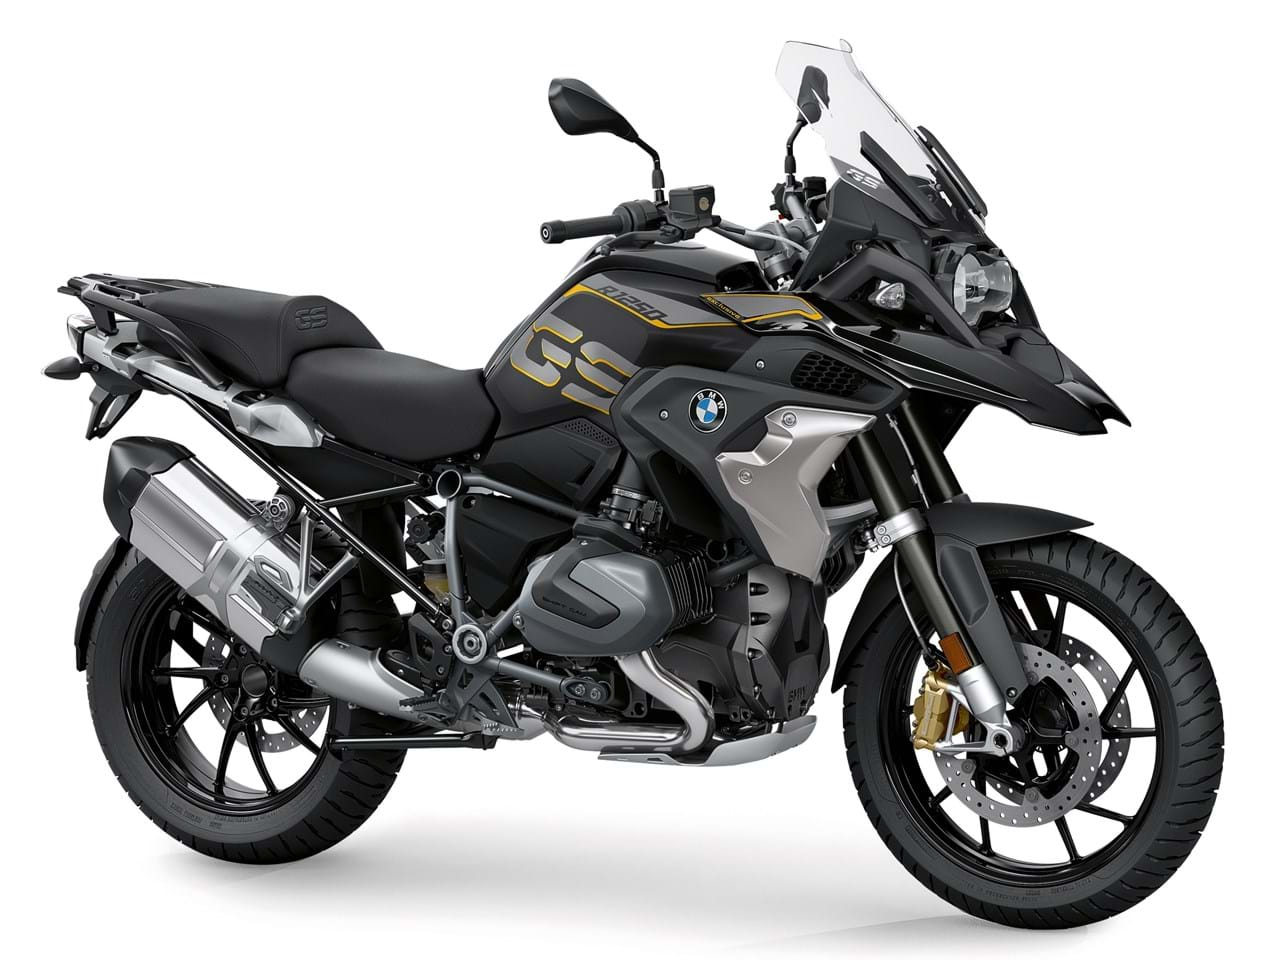 Bmw Enduro R1250gs 2019 On For Sale Price Guide